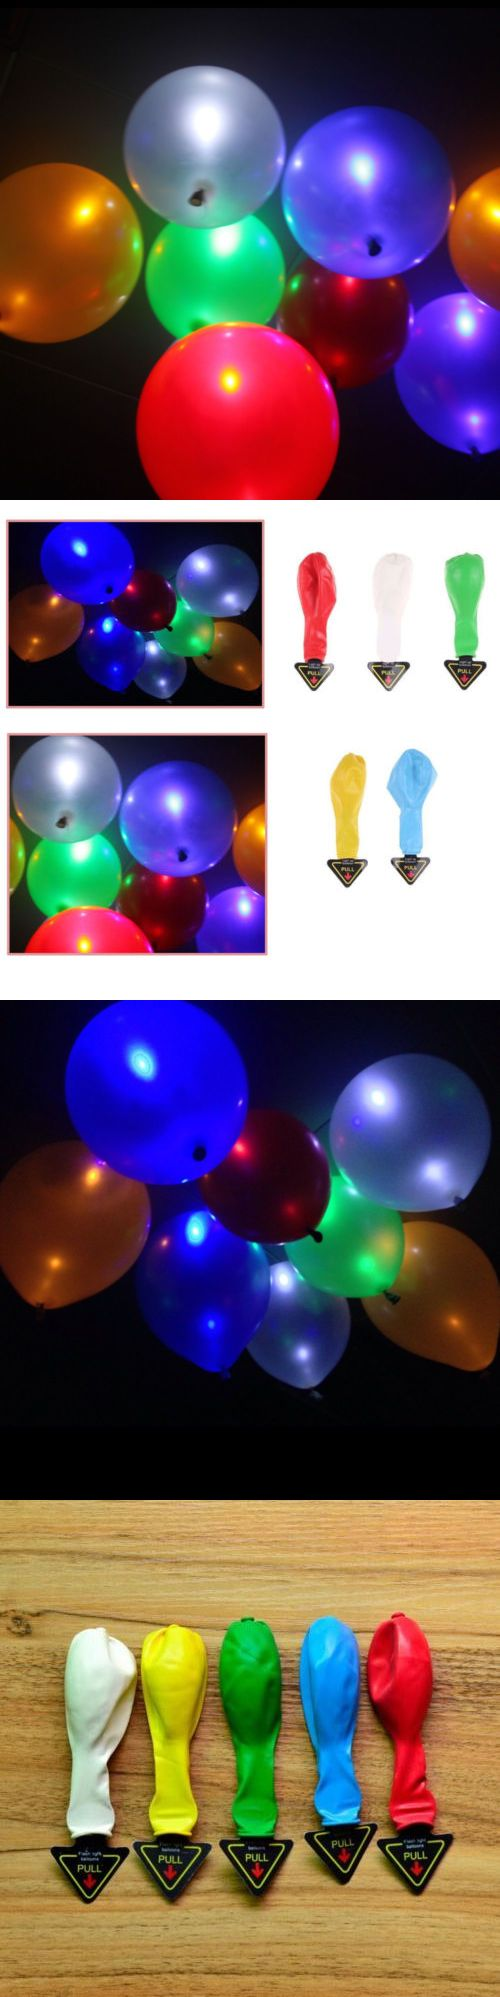 Venue Decorations 102430: 100-200Pack Led Helium Air Mixed Color Balloon Wedding Light Up Decoration Party -> BUY IT NOW ONLY: $36.99 on eBay!